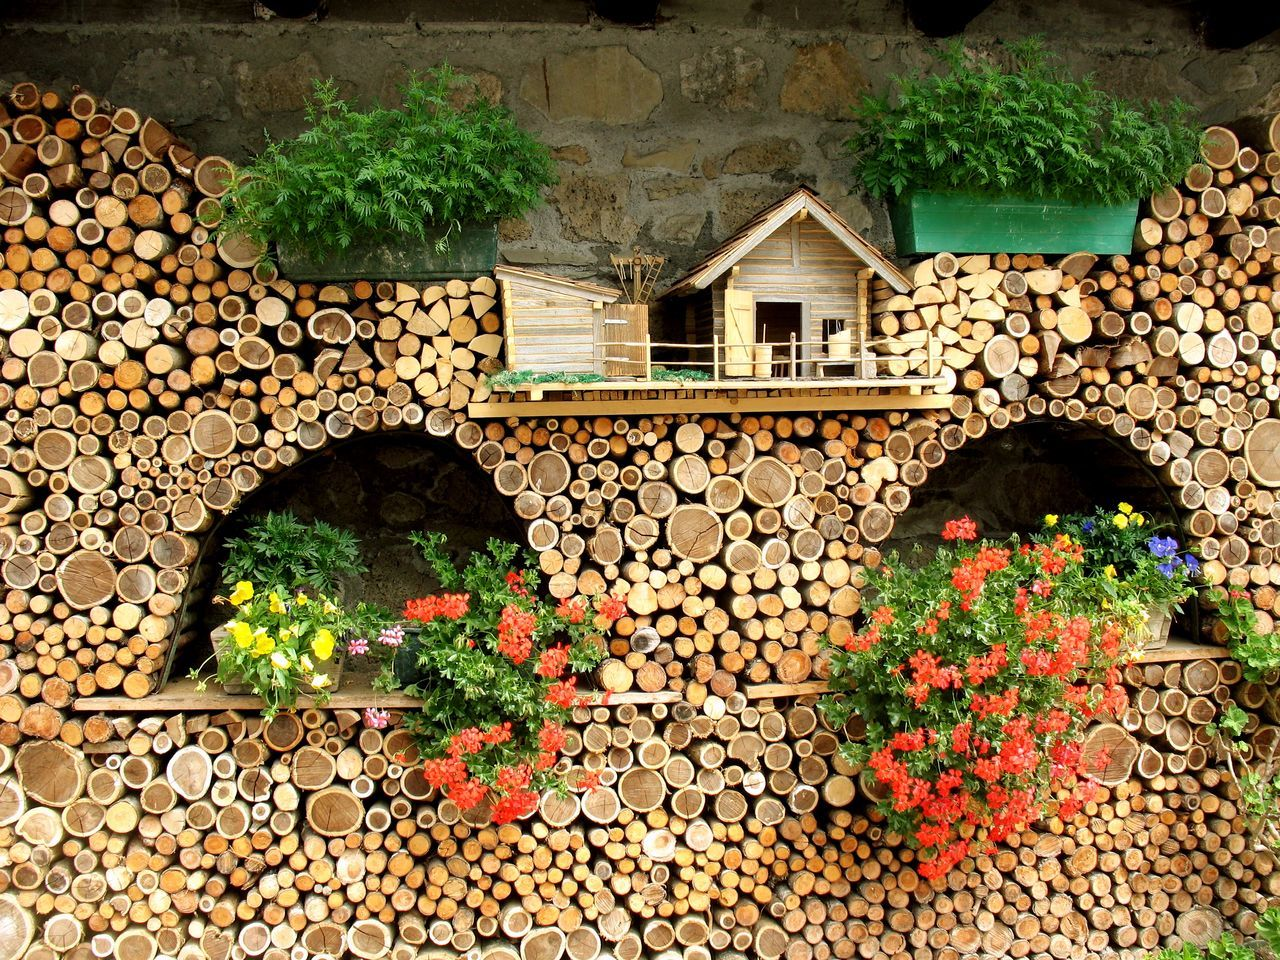 Architecture Ecologic Friuli Venezia Giulia Sauris Surrounding Wall Wall Wall - Building Feature Wood Wood - Material Wooden Wooden Architecture Wooden Art Wooden House Wooden Wall